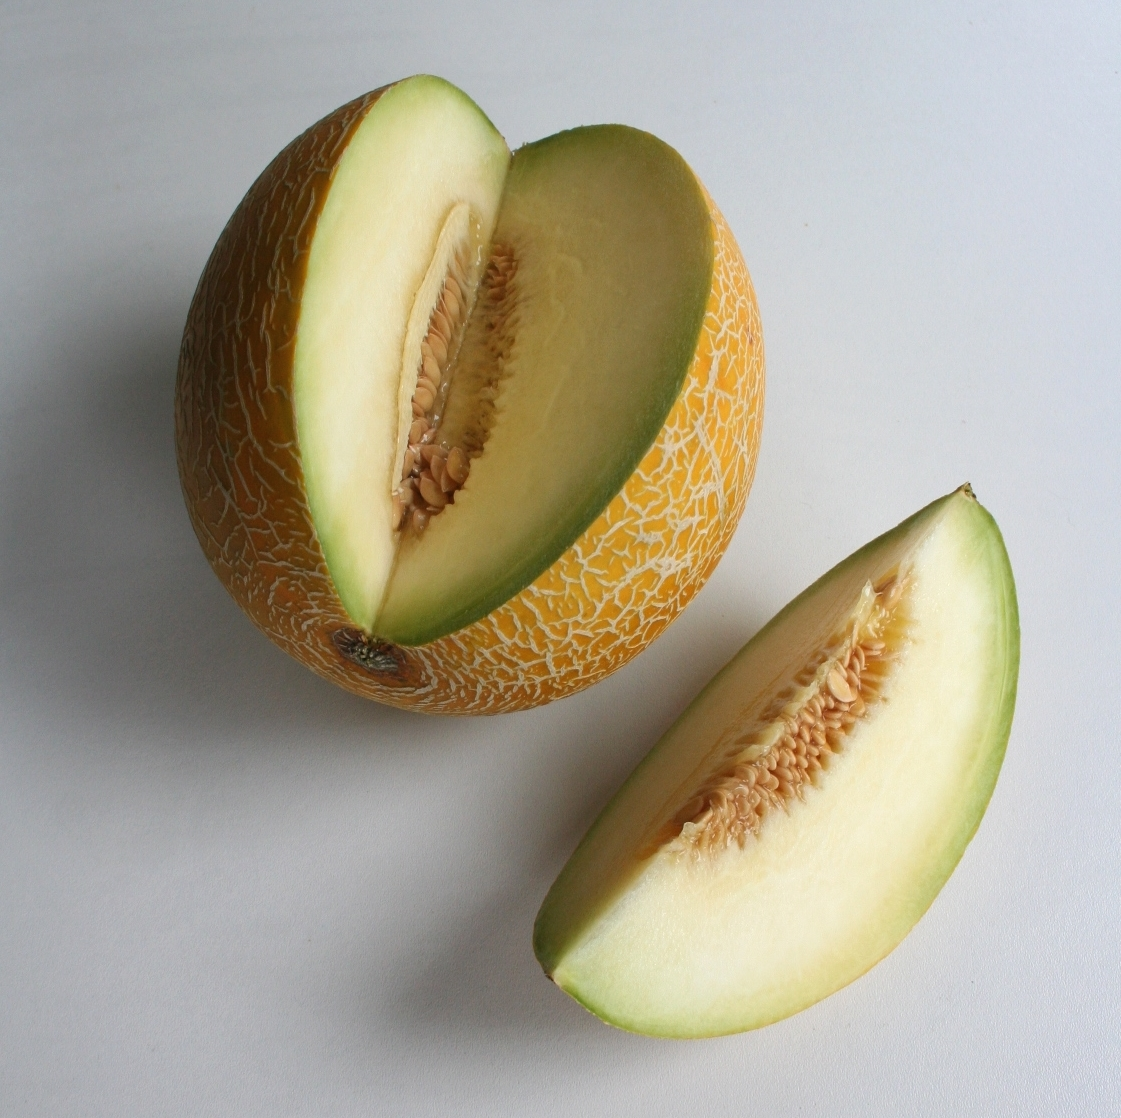 Galia Melon Wikipedia He was seen being annoying by orange until he decided to take off with his fiancée, balloon. galia melon wikipedia